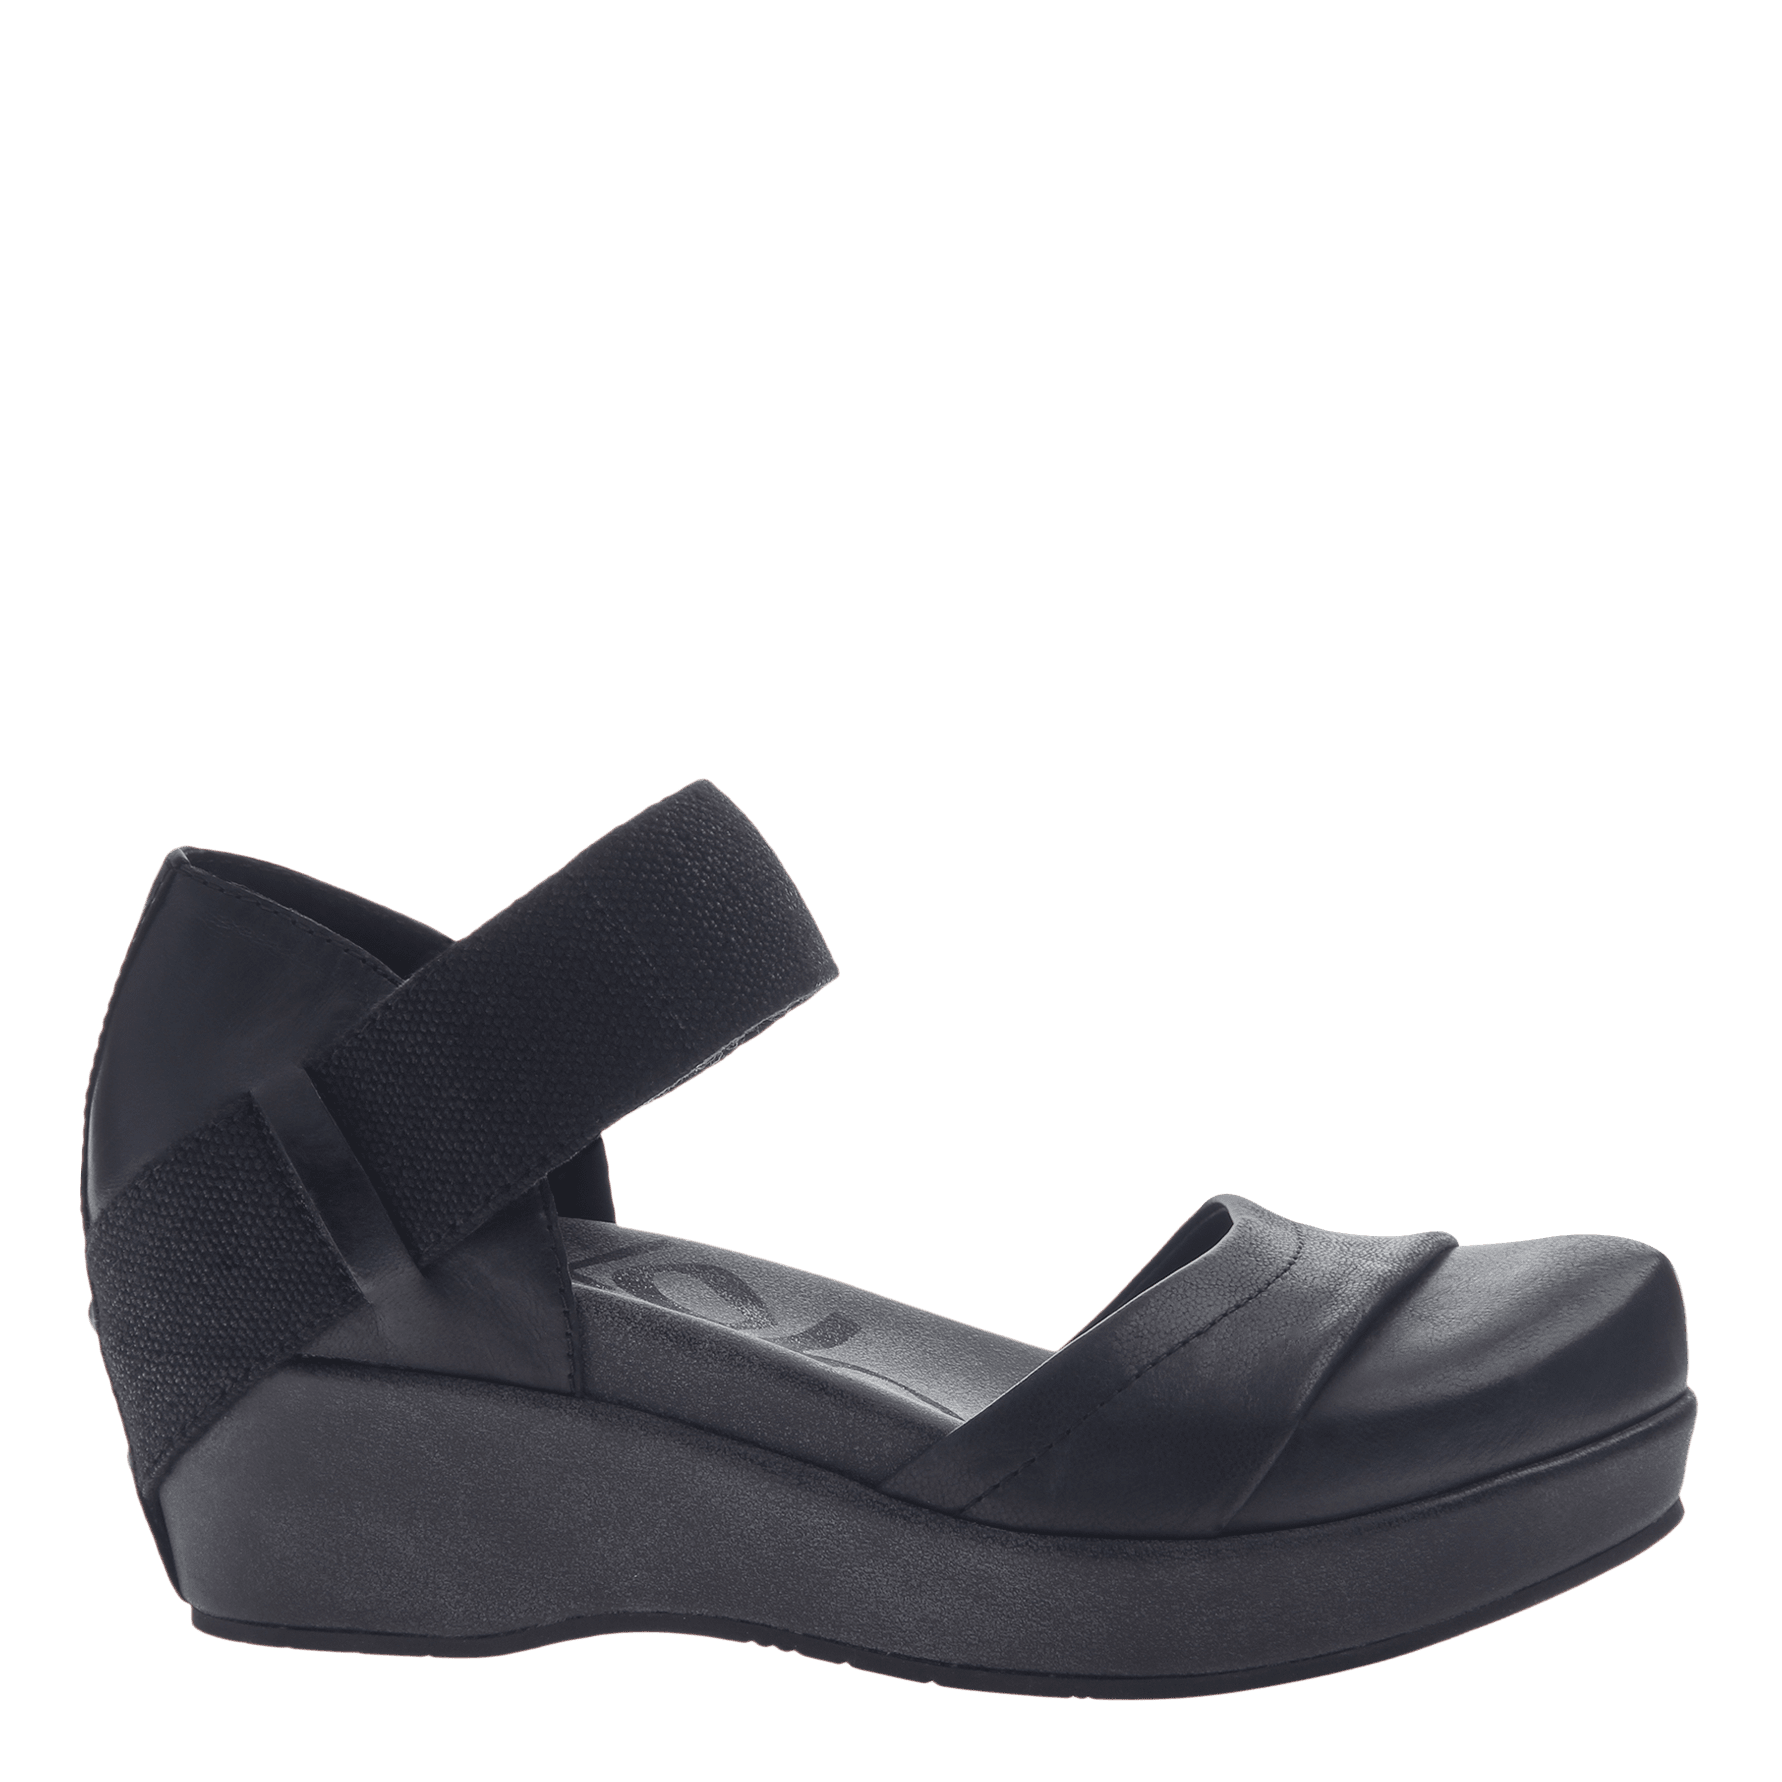 d10f06dd0bd6 Womens closed toe wedges wander out in black side view